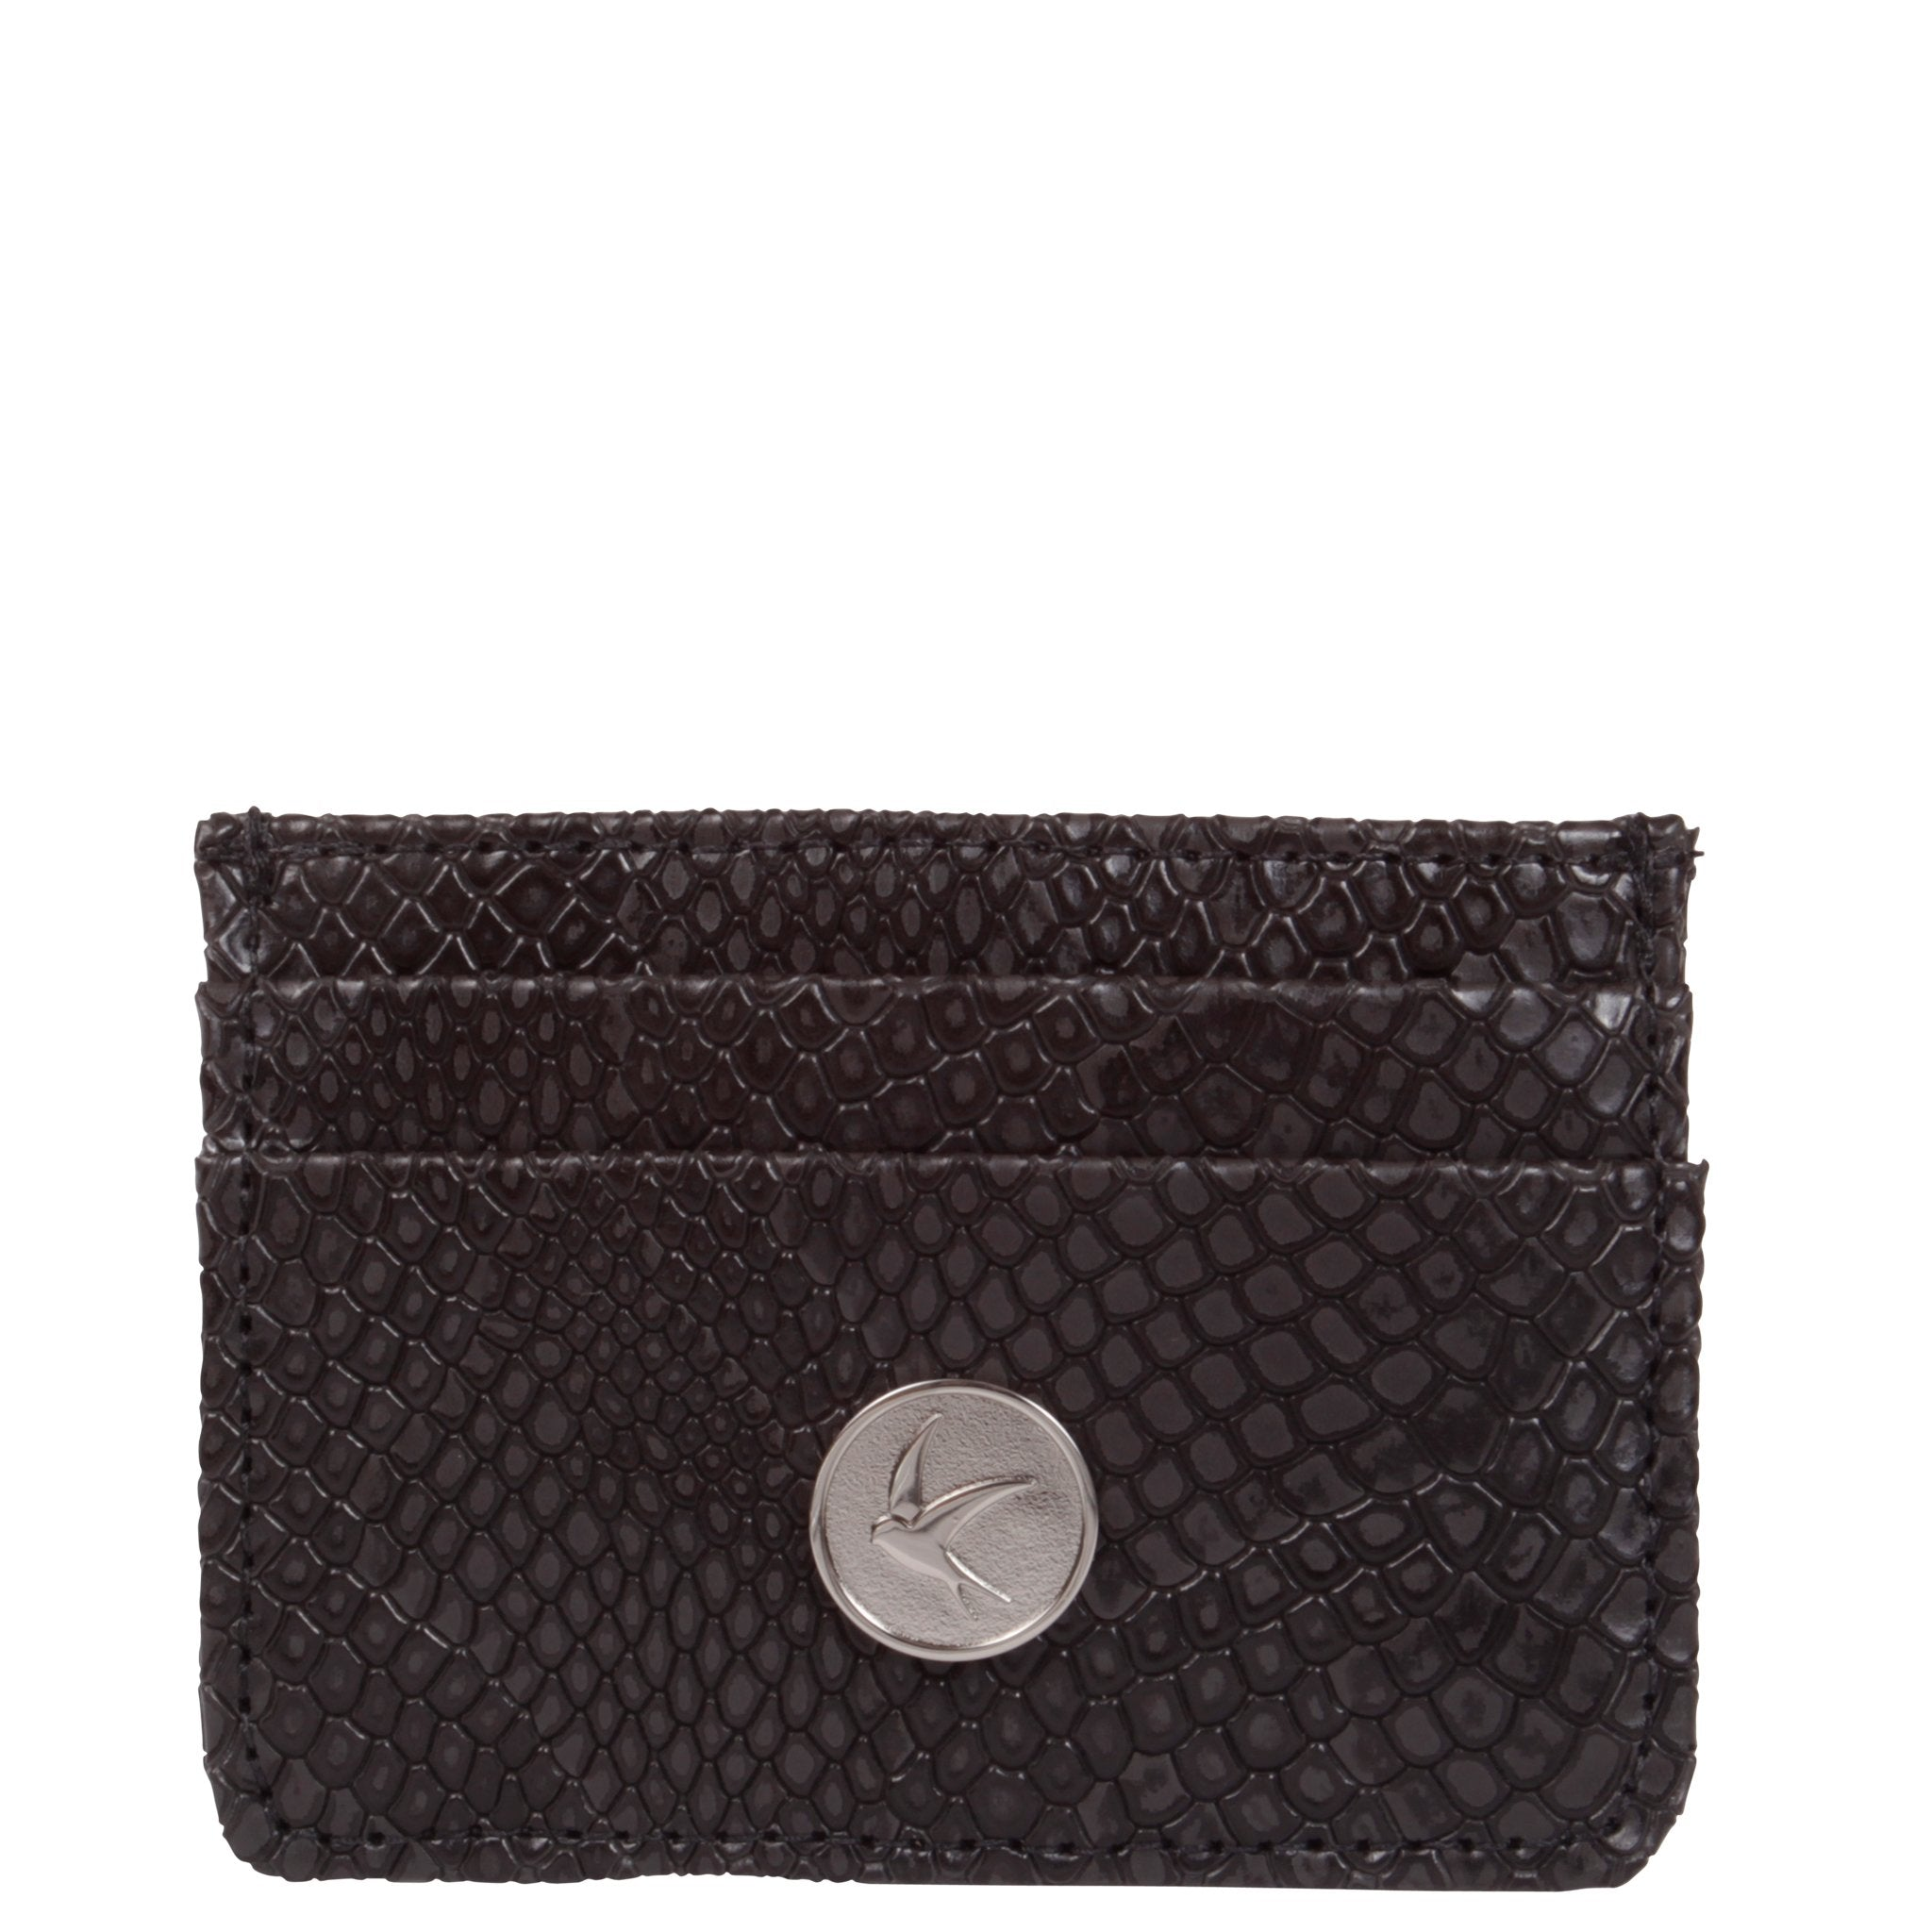 Svala vegan Mia card case in black faux snakeskin